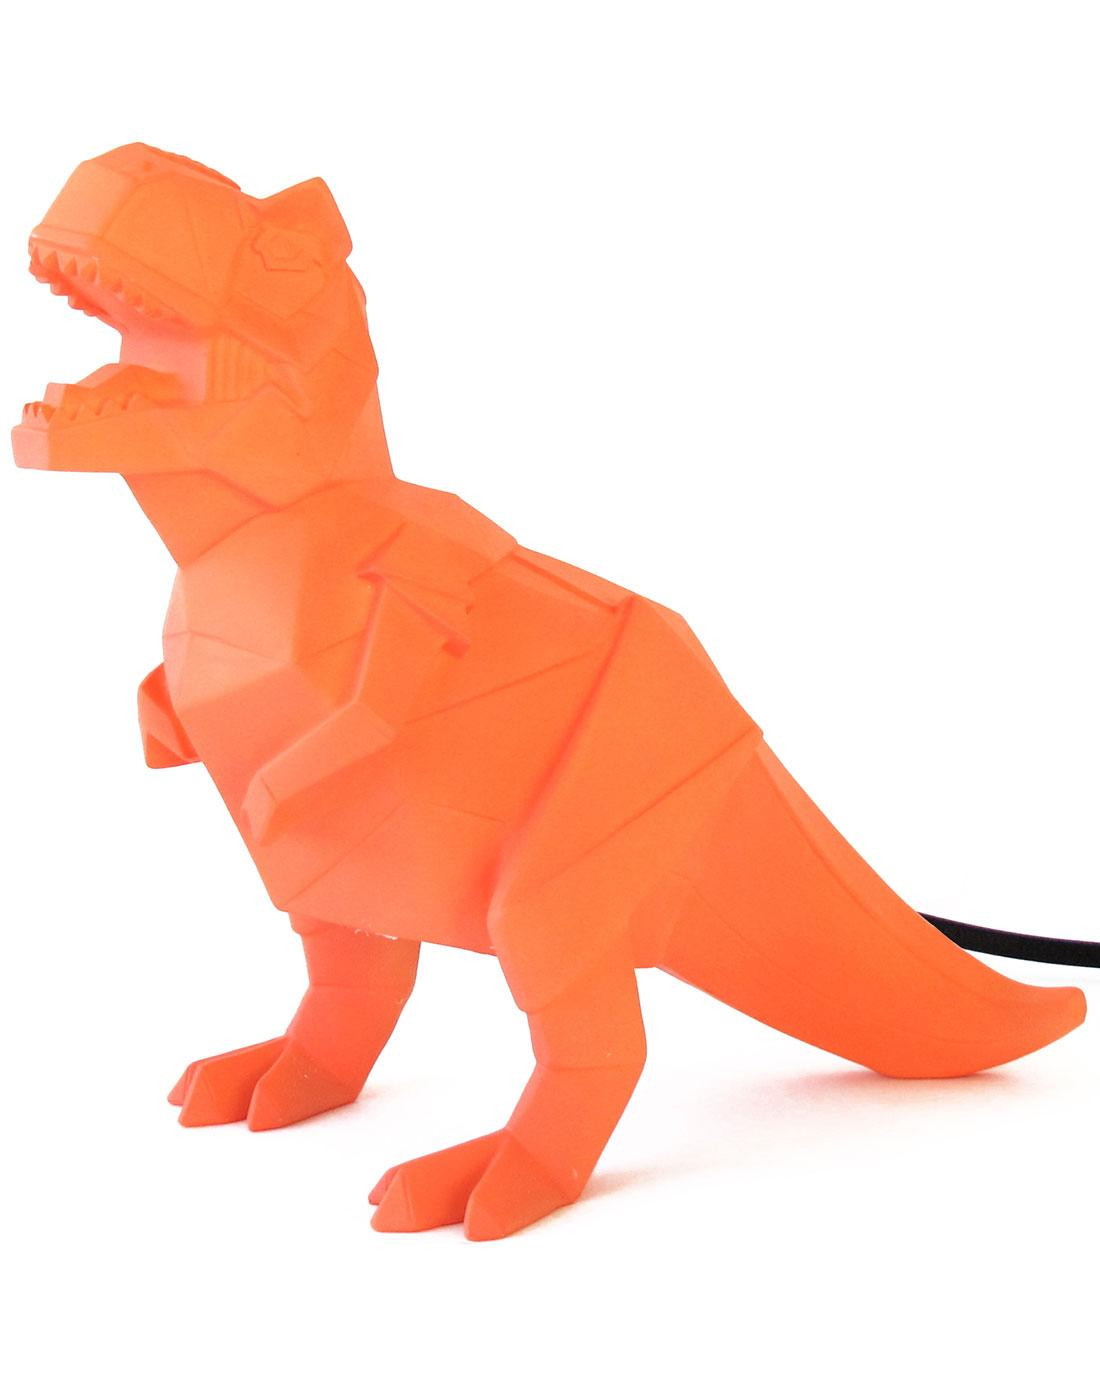 DISASTER DESIGNS T-Rex Dinosaur Origami Lamp